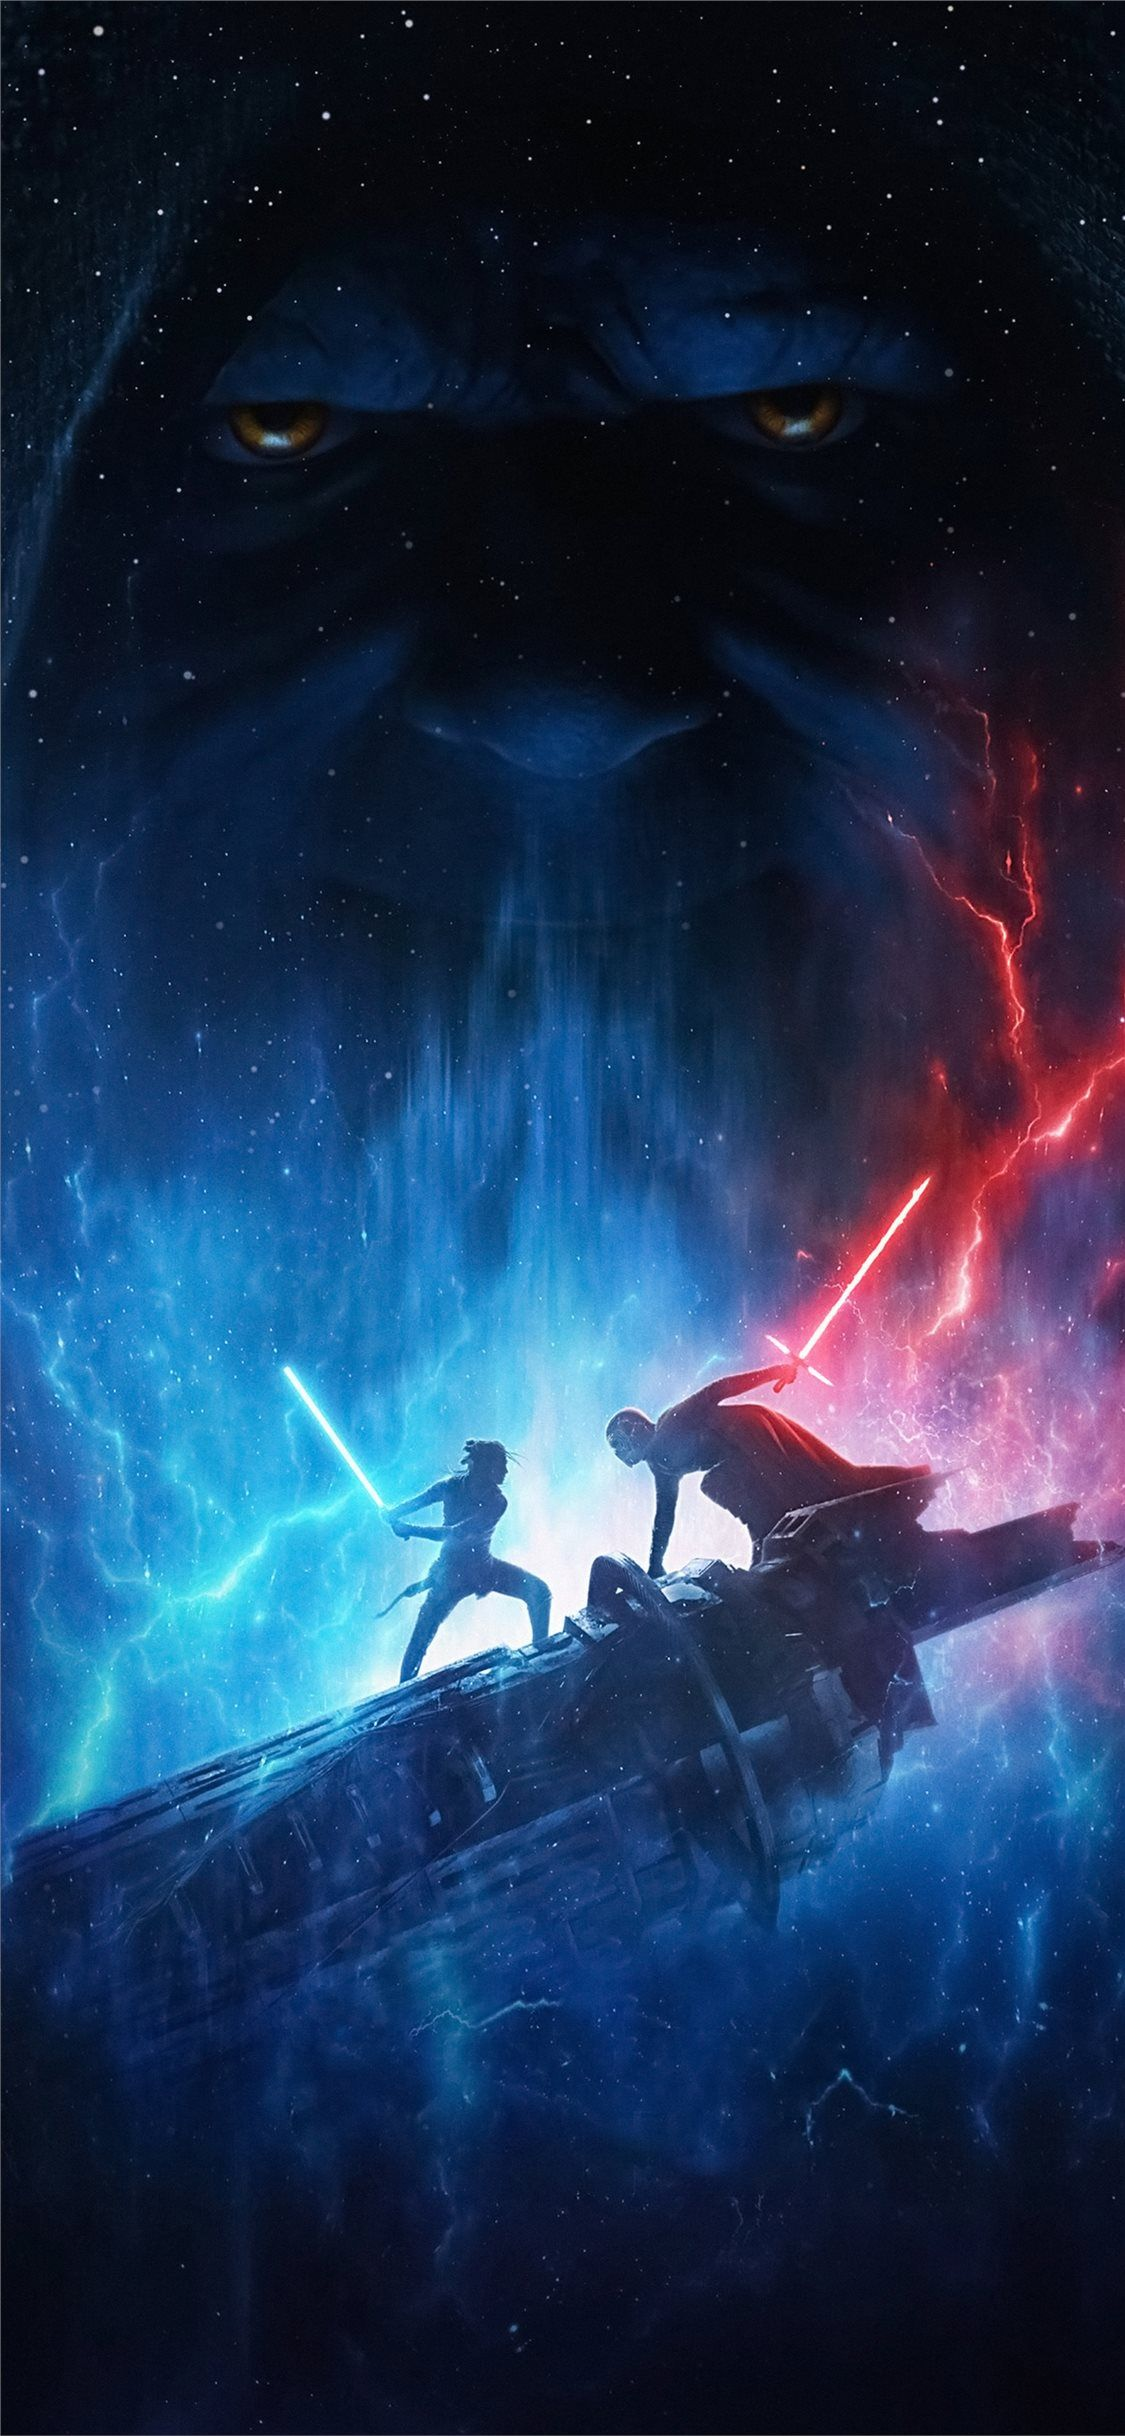 Star Wars The Rise Of Skywalker 2019 4k Wallpaper Star Wars Wallpaper Iphone Star Wars Wallpaper Star Wars Watch